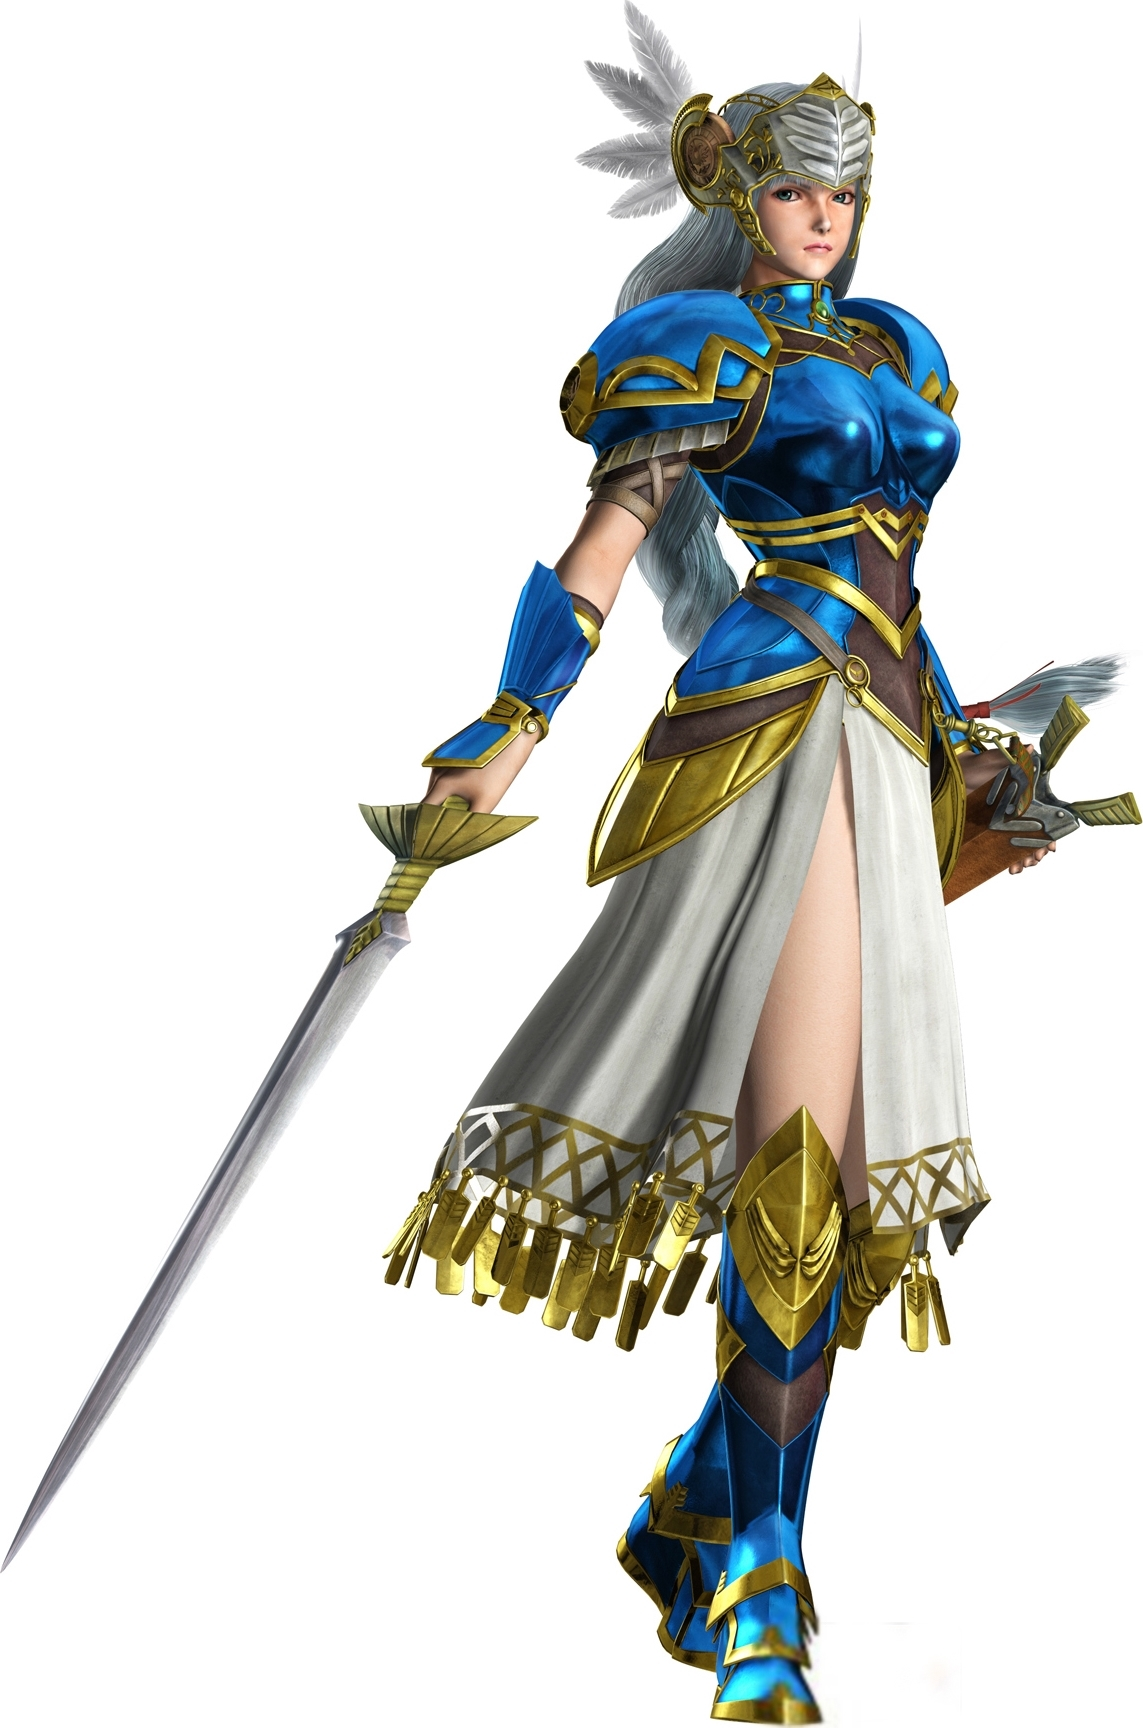 http://images.wikia.com/valkyrieprofile/images/9/92/Lenneth.jpg